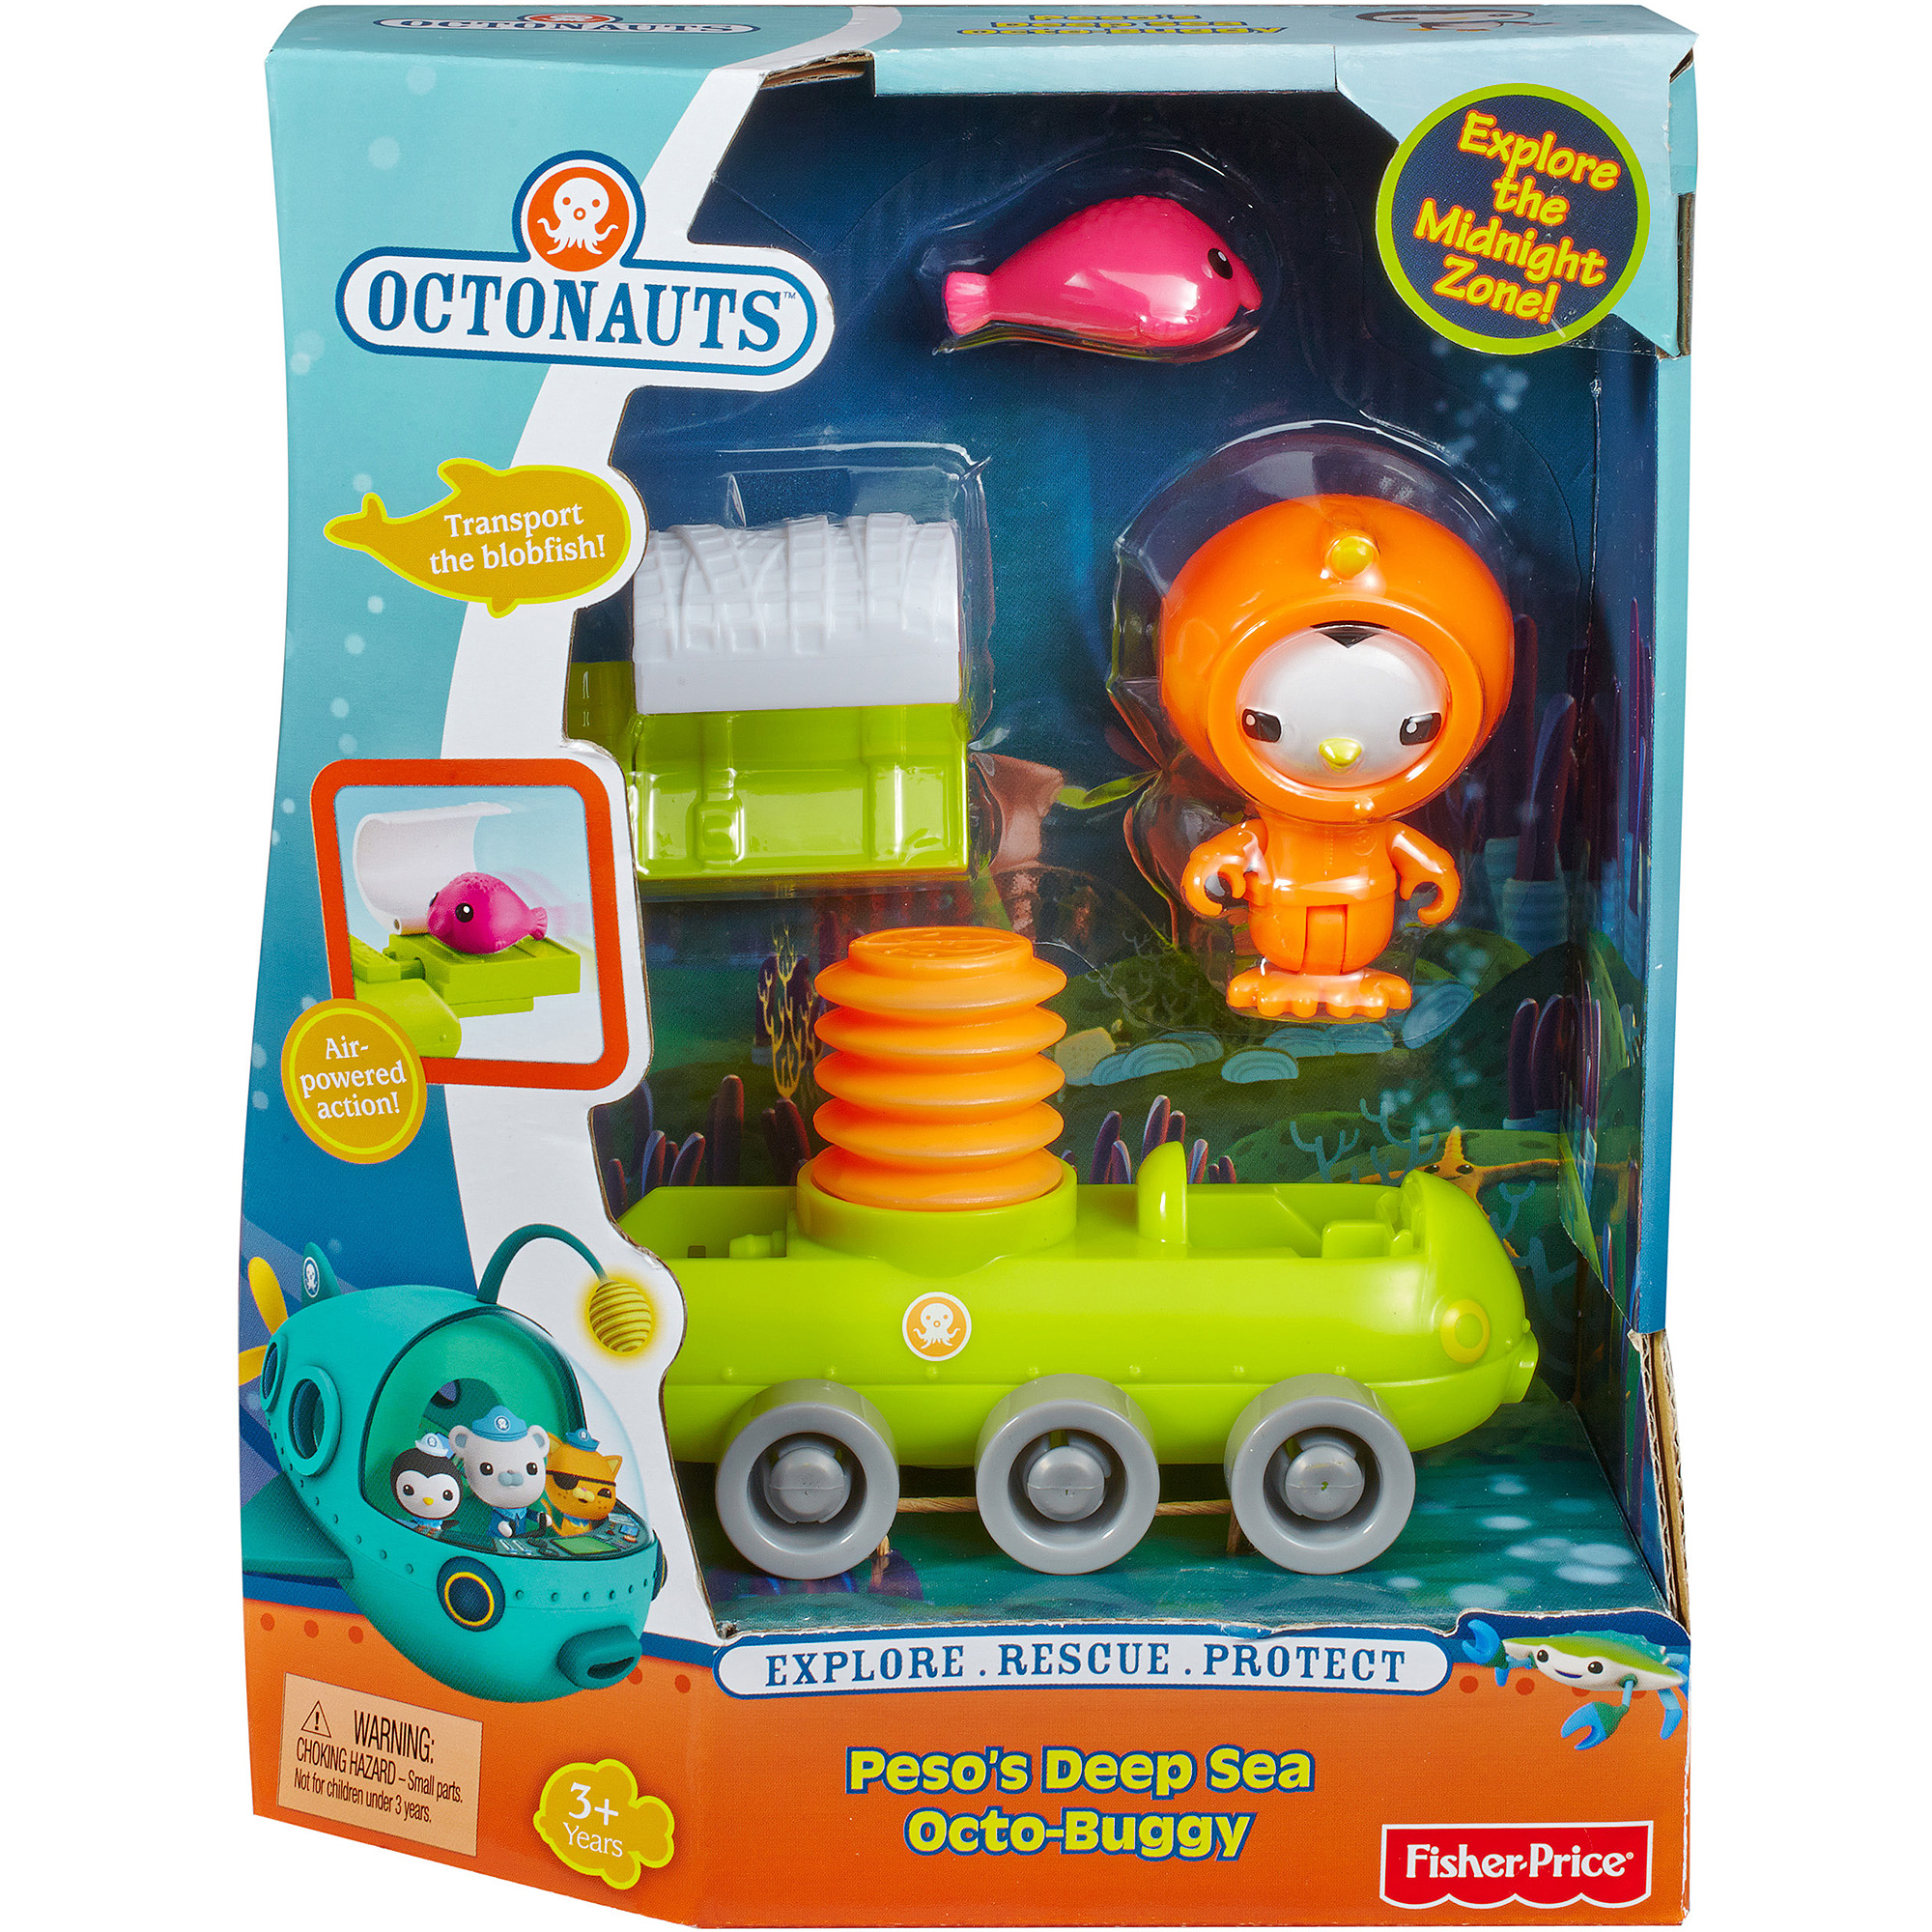 Fisher-Price Octonauts Peso's Deep Sea Octo-Buggy Play Set